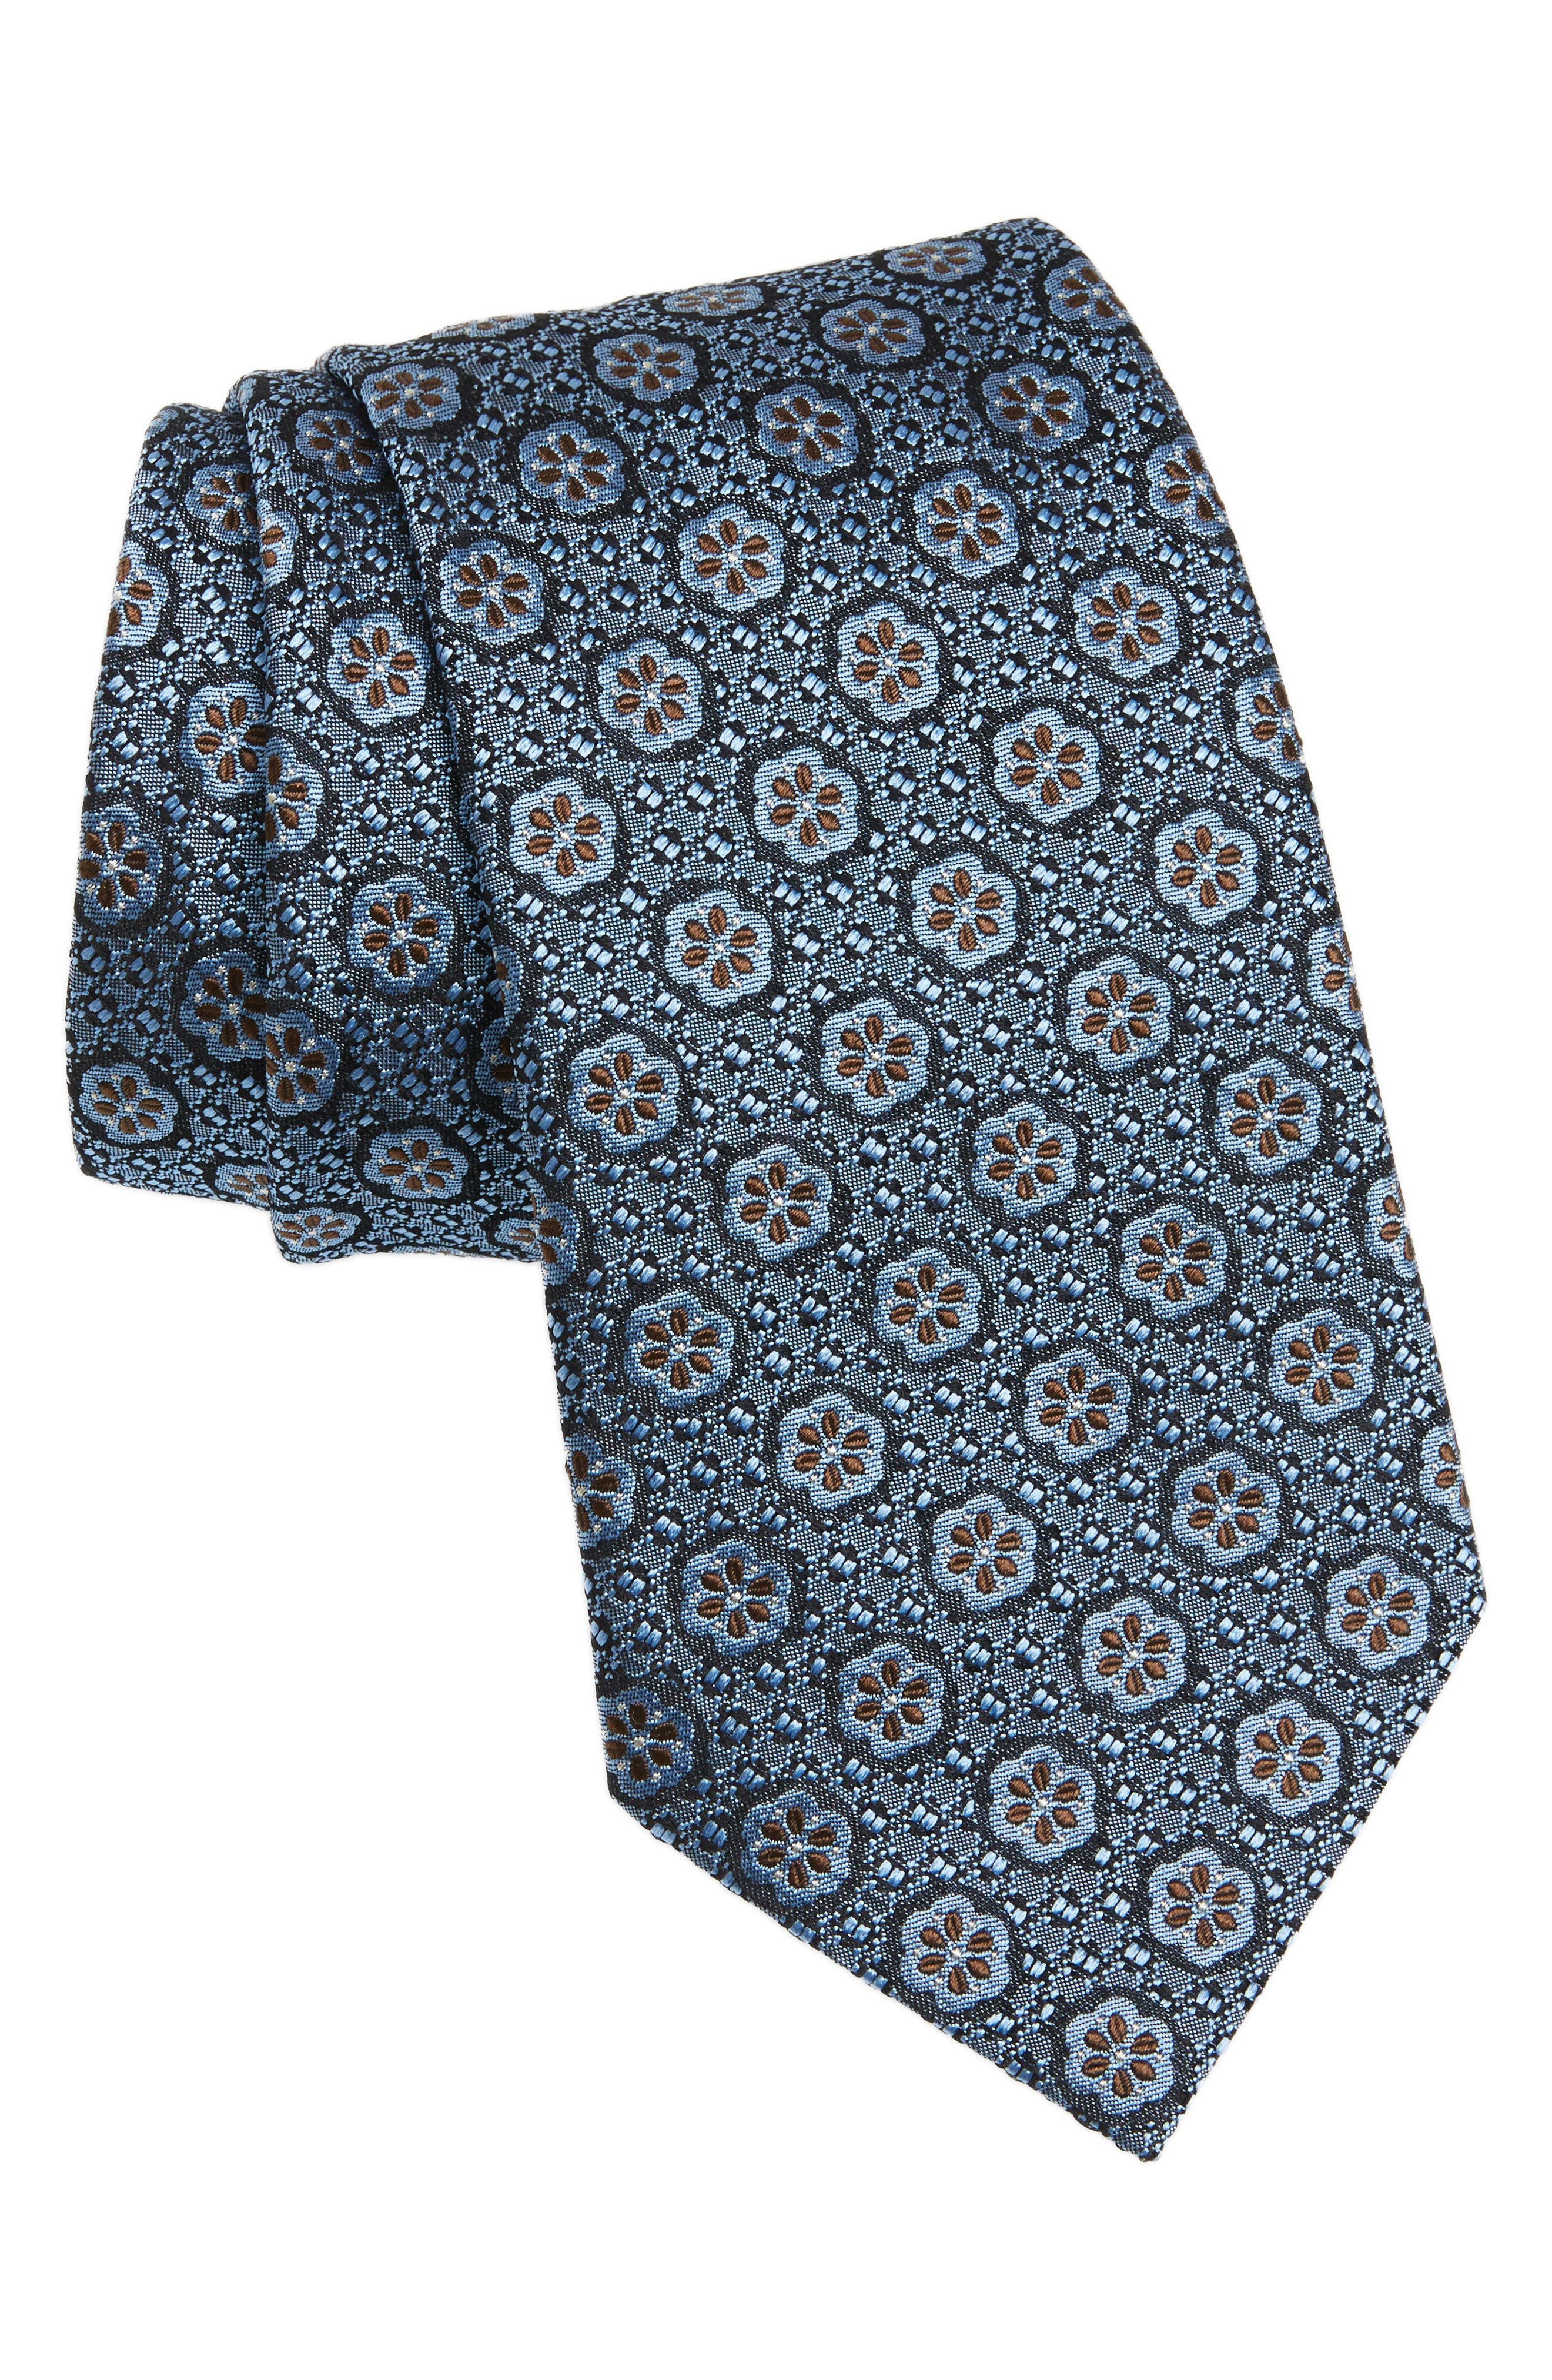 Alternate Image 1 Selected - Ermenegildo Zegna Medallion Silk Tie